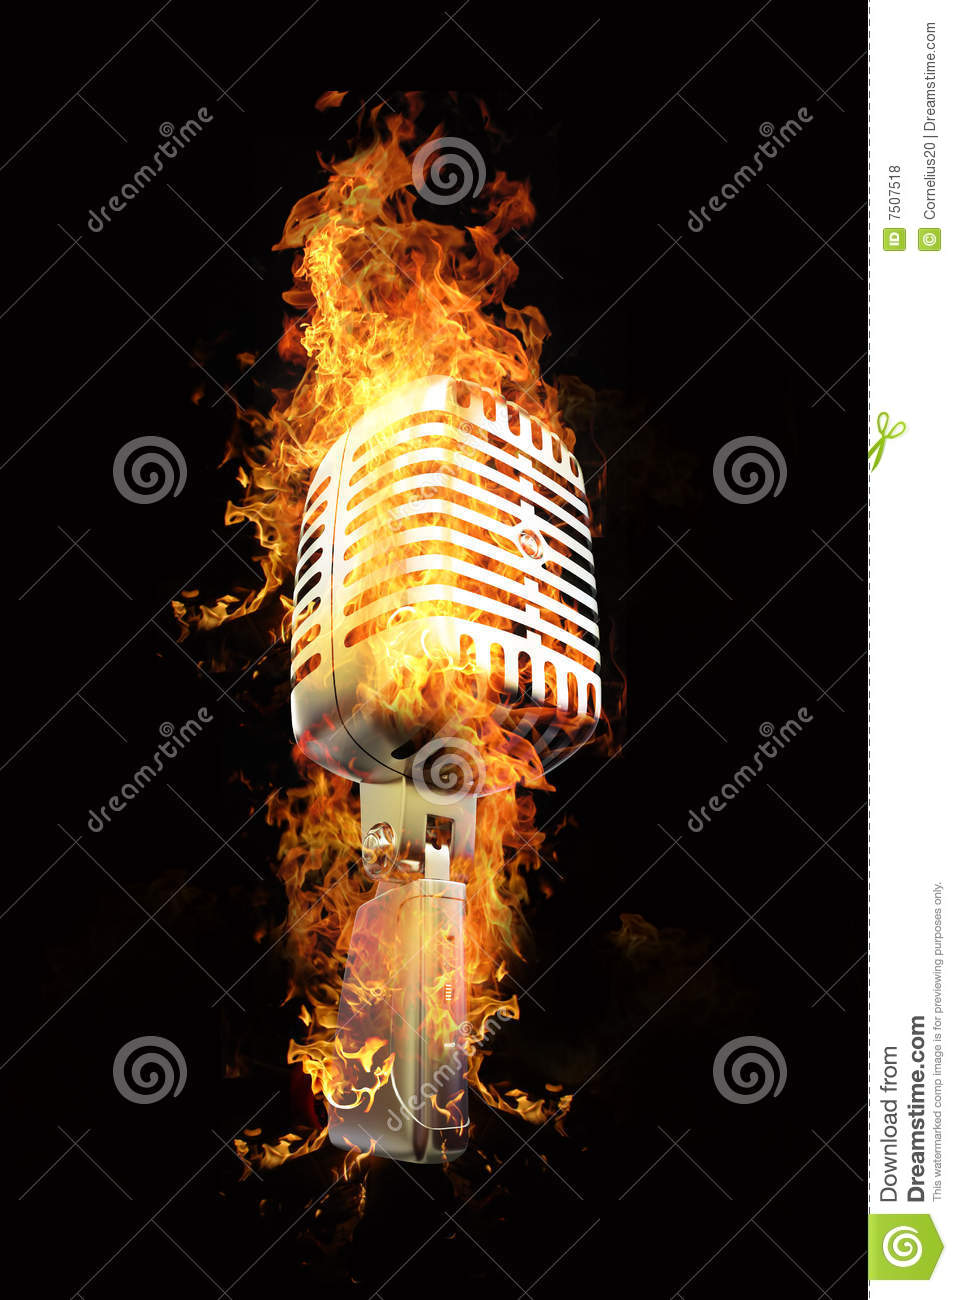 Microphone in flames